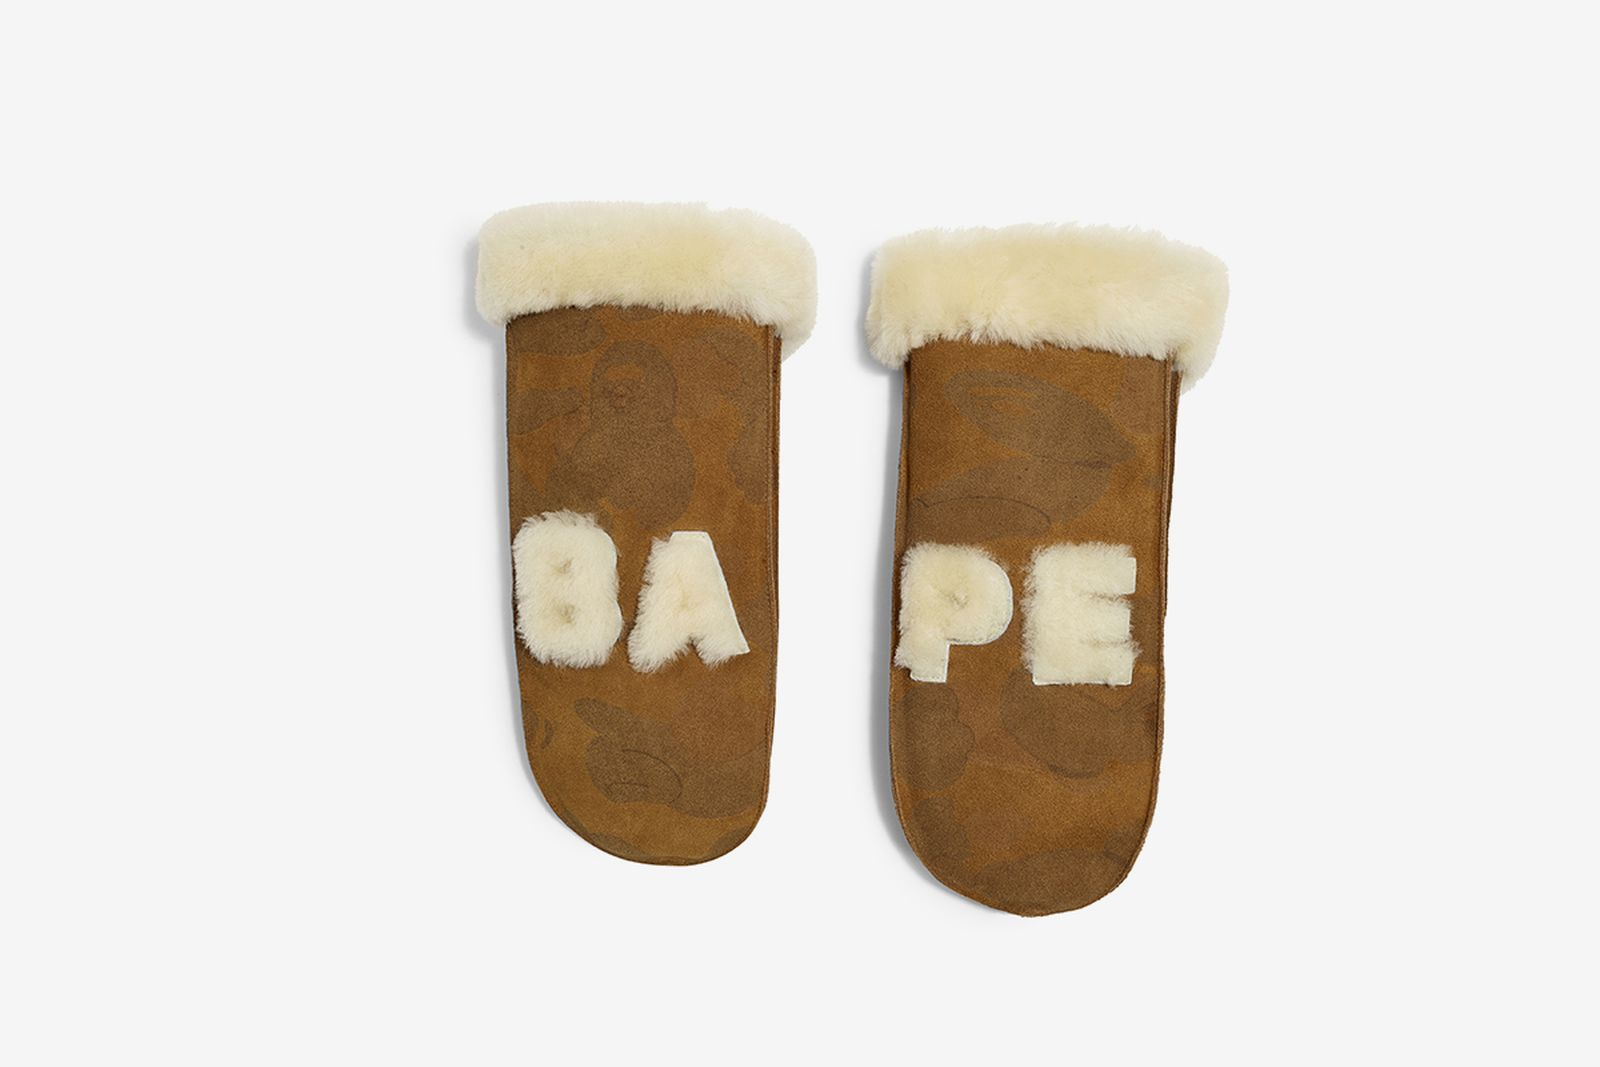 bape-ugg-fw19-release-date-price-09